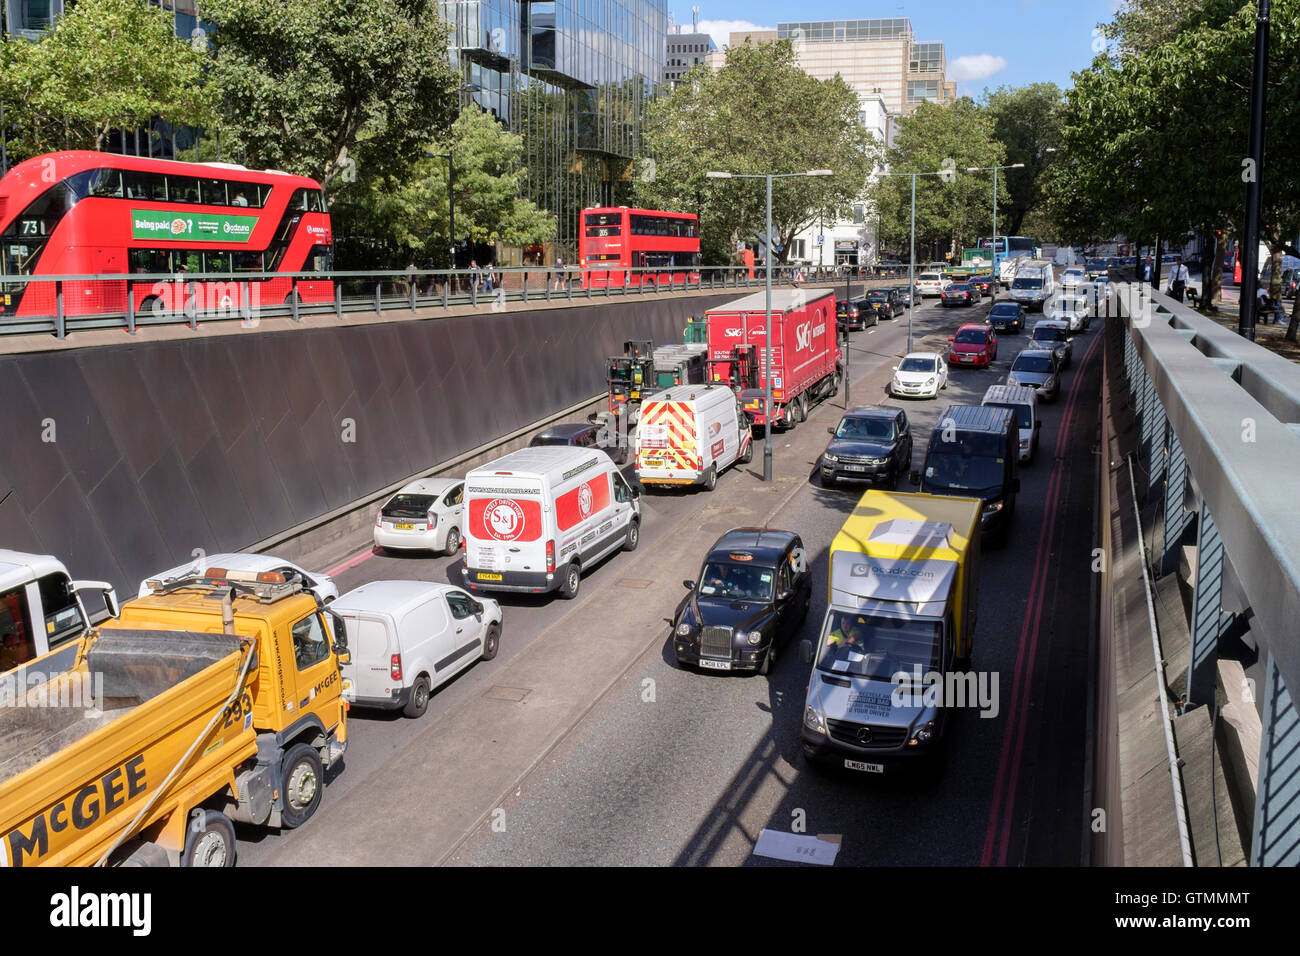 Traffic congestion in Euston Road underpass, London, UK - Stock Image